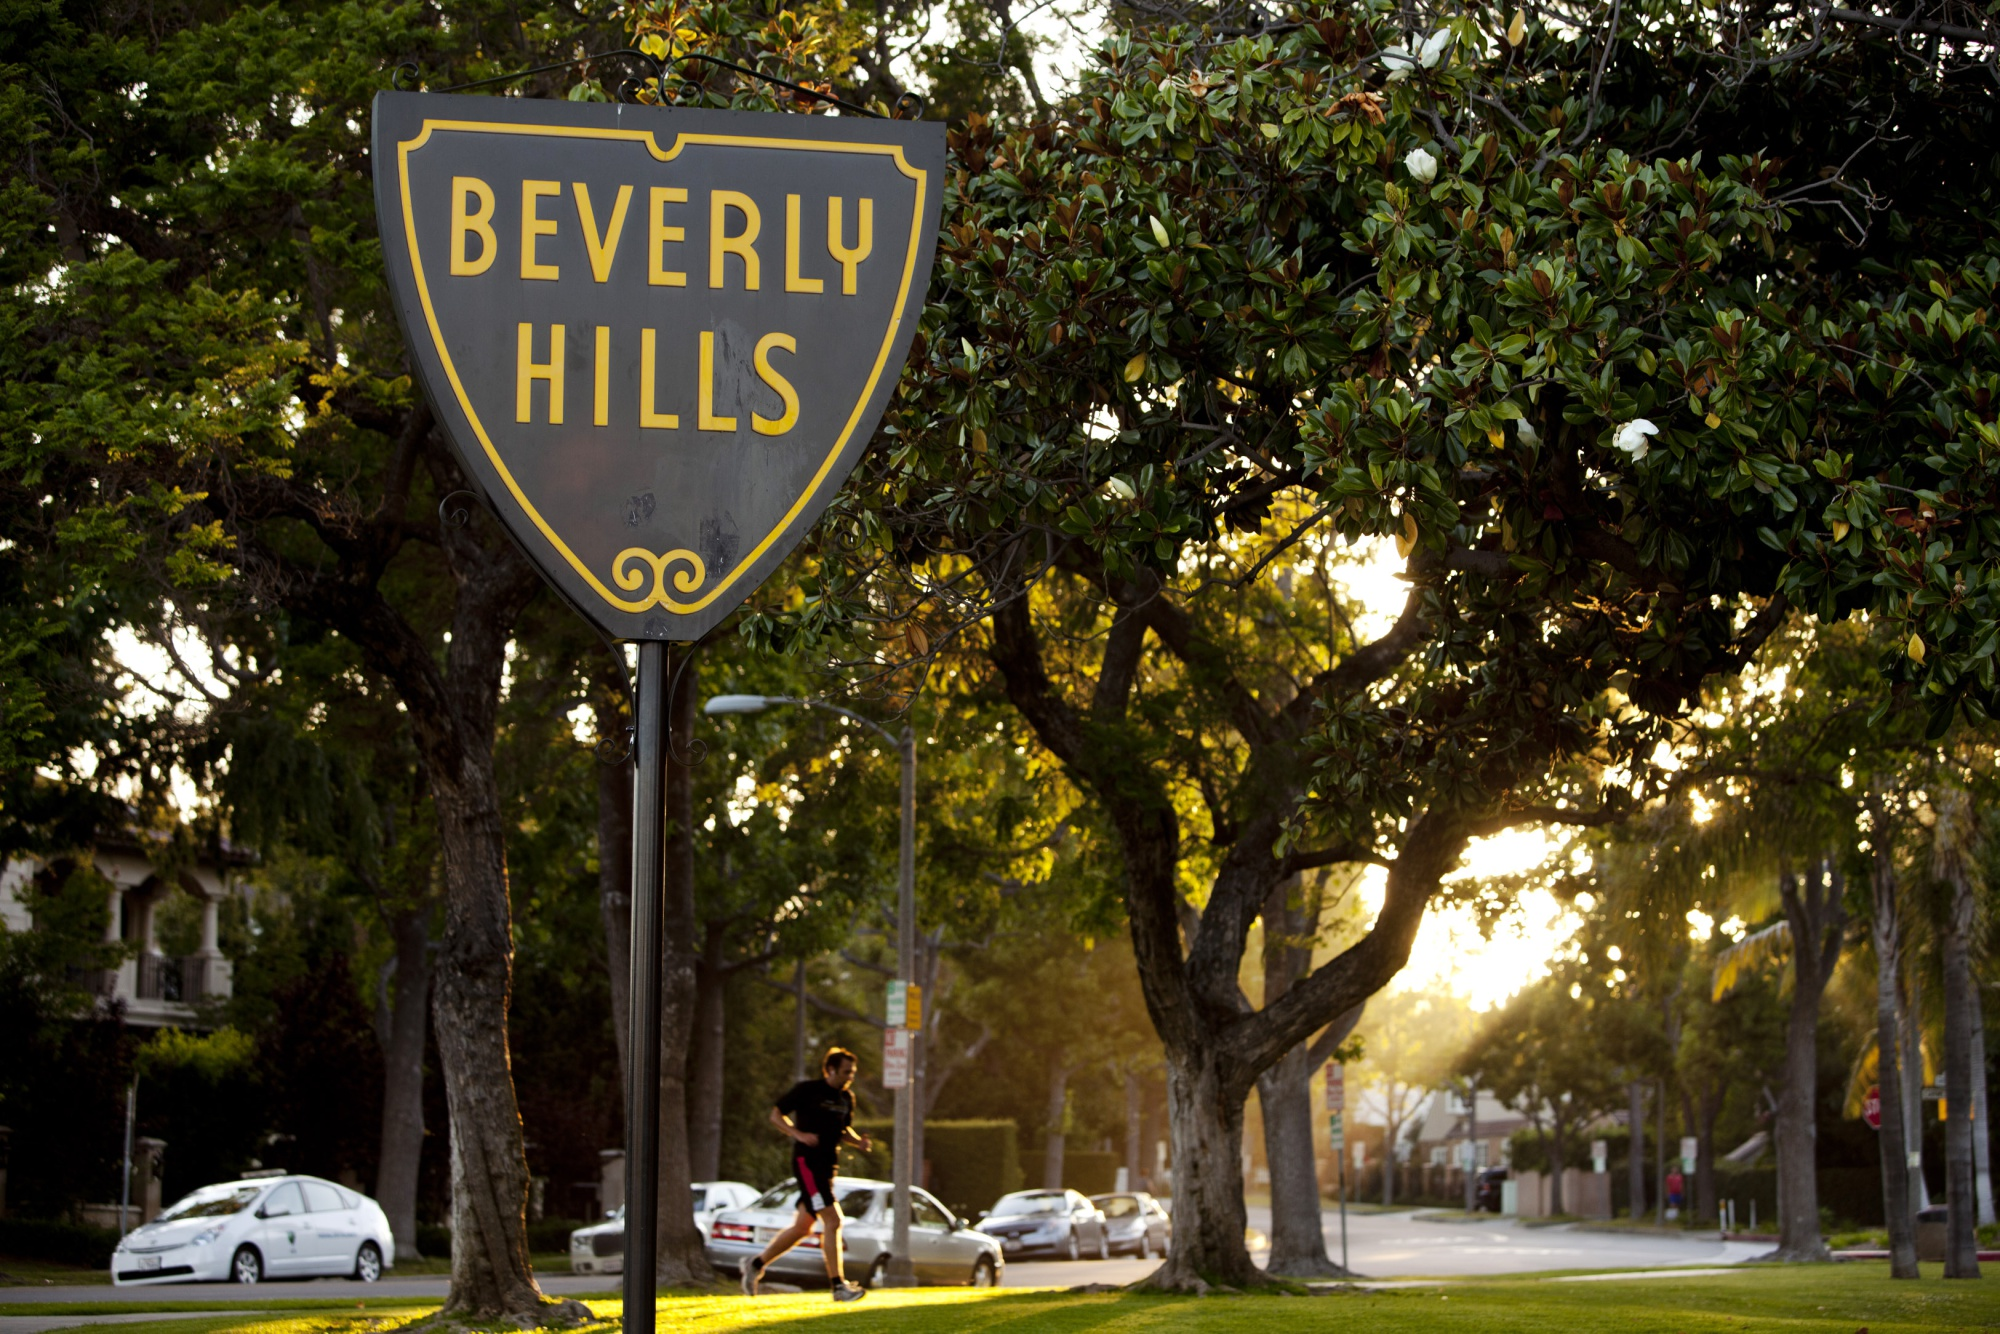 The official seal of the city of Beverly Hills is displayed on a sign in Beverly Hills, California, U.S.